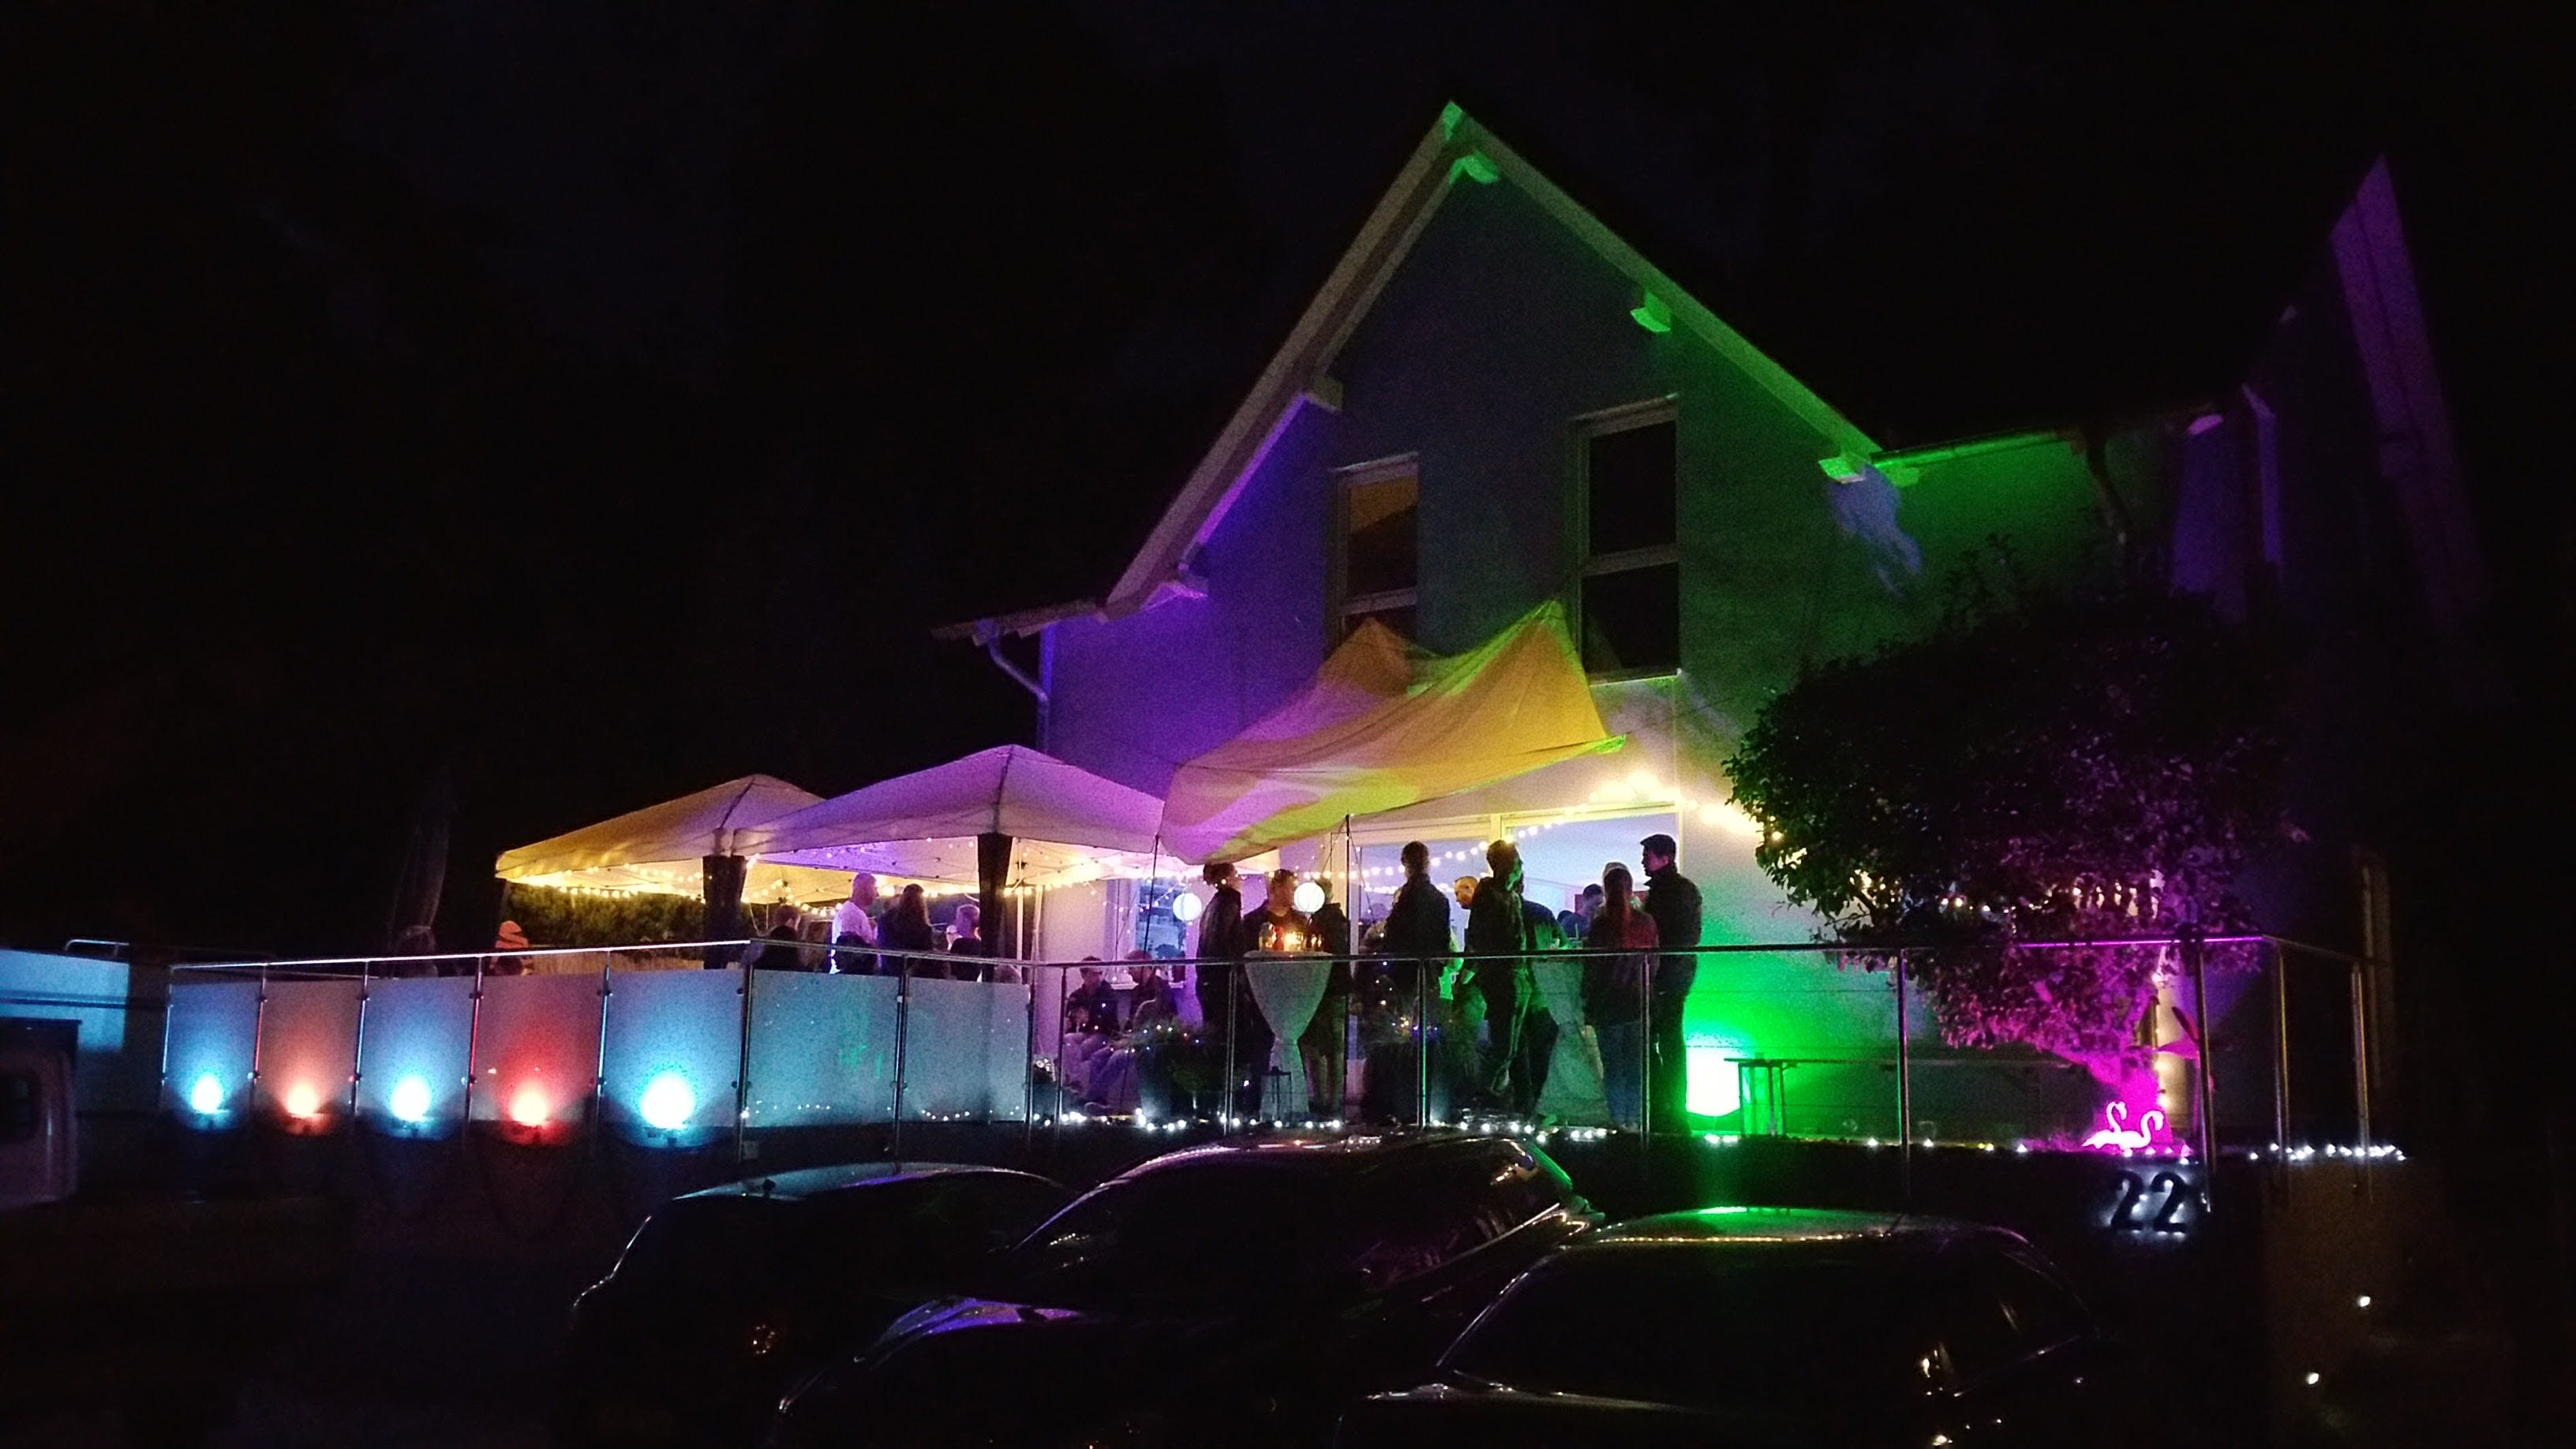 outdoor lights in action ( red/blue on left side of the picture)